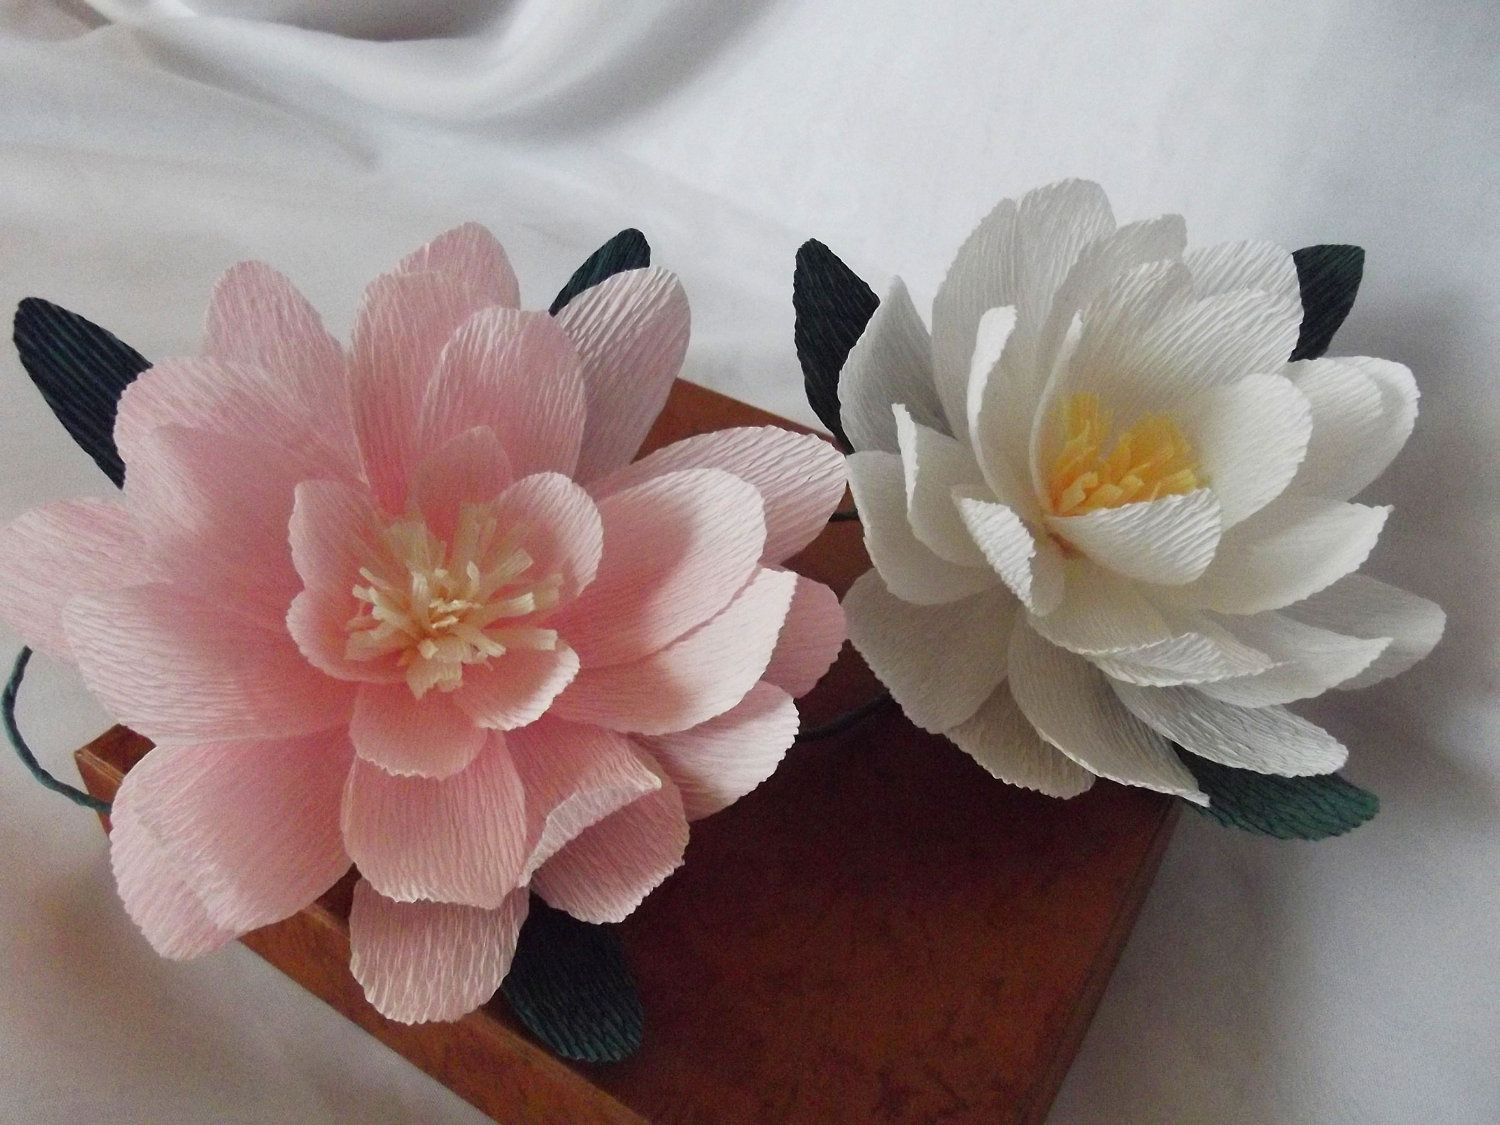 Wedding flowers lotus water lily 3 pcs lotus rustic flowers wedding flowers lotus water lily 3 pcs lotus rustic flowers wedding decorpaper flower decorpaper flowers lotuspartybaby shower mightylinksfo Gallery